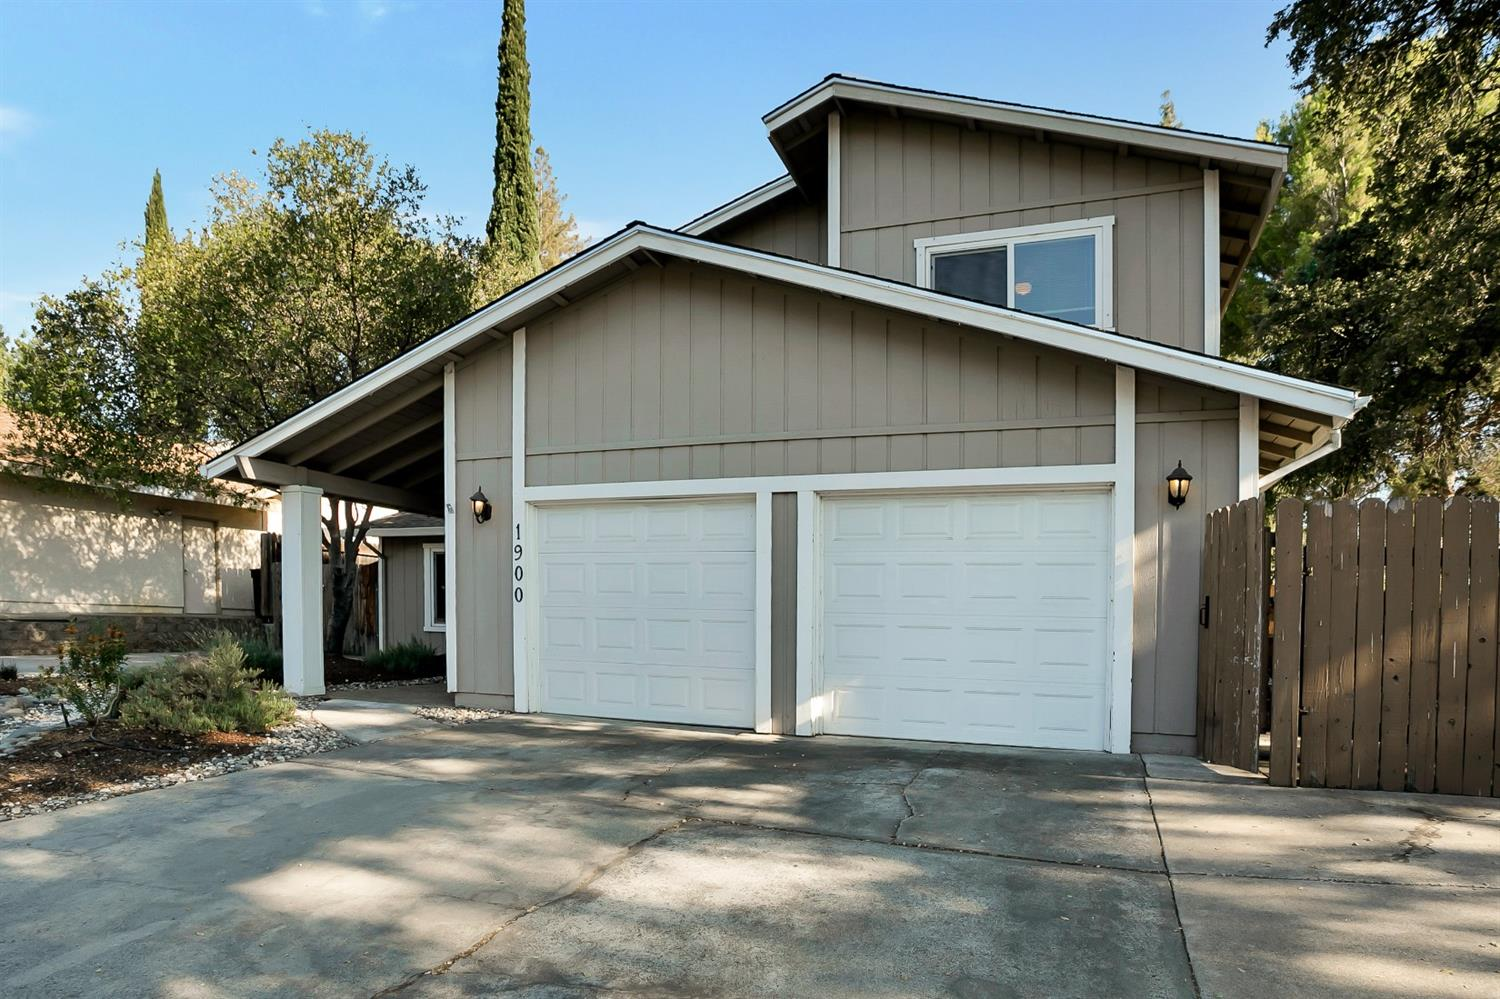 Photo 4 for Listing #221079305